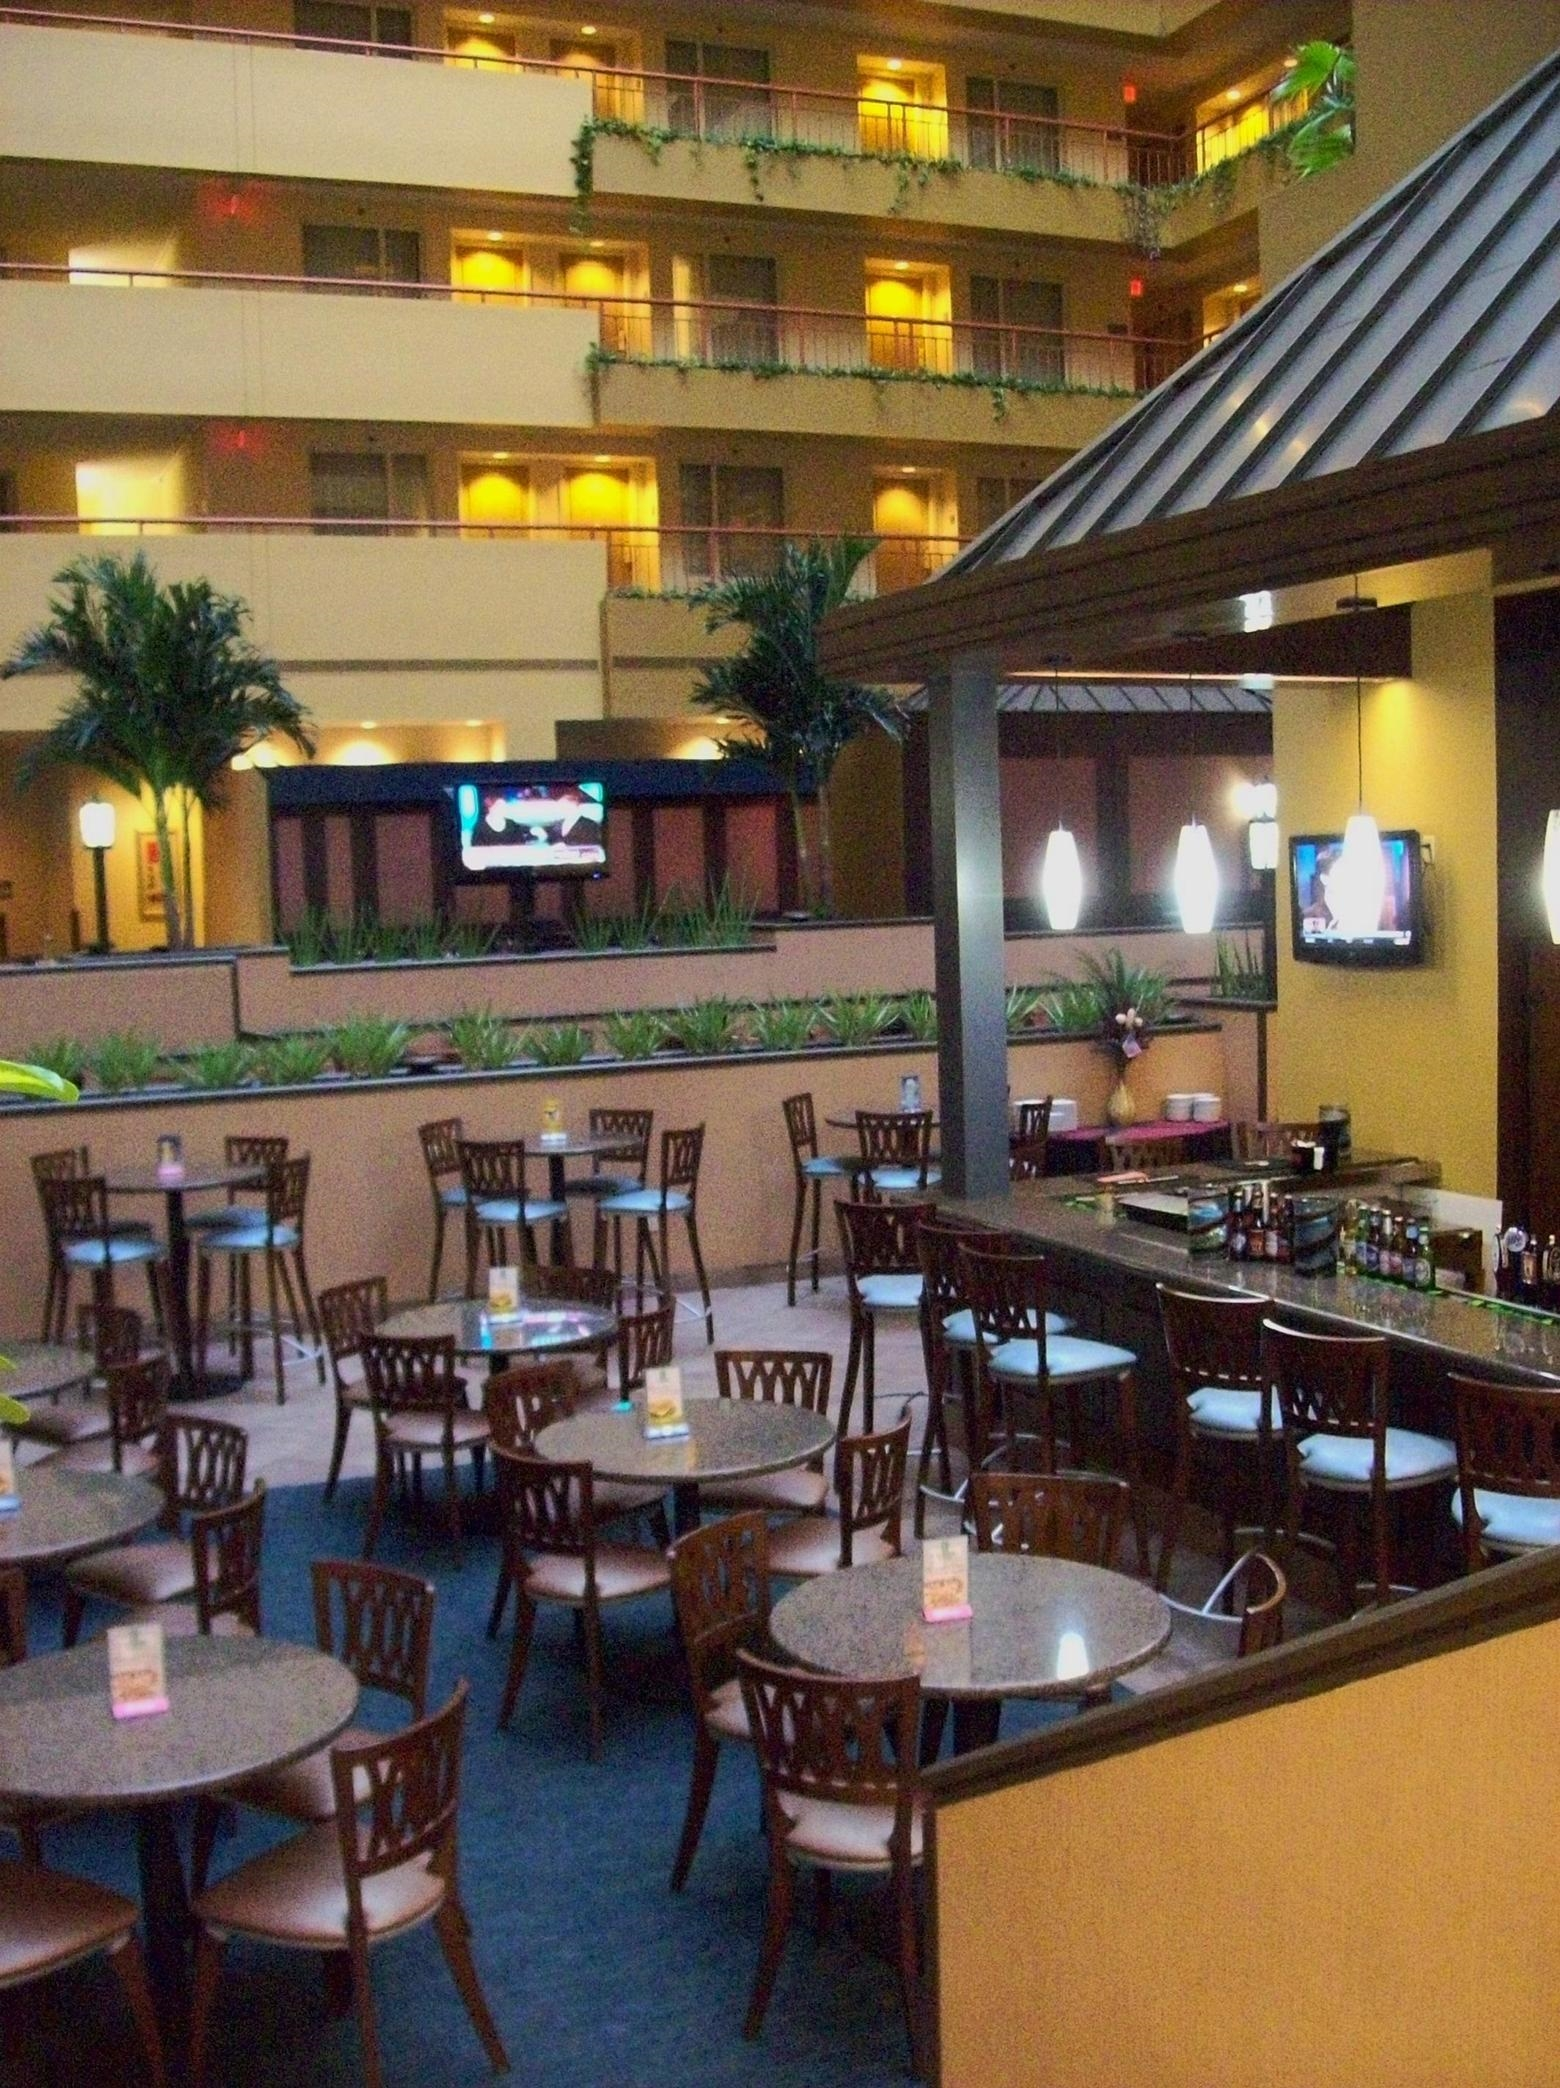 Embassy Suites by Hilton Baltimore at BWI Airport image 10